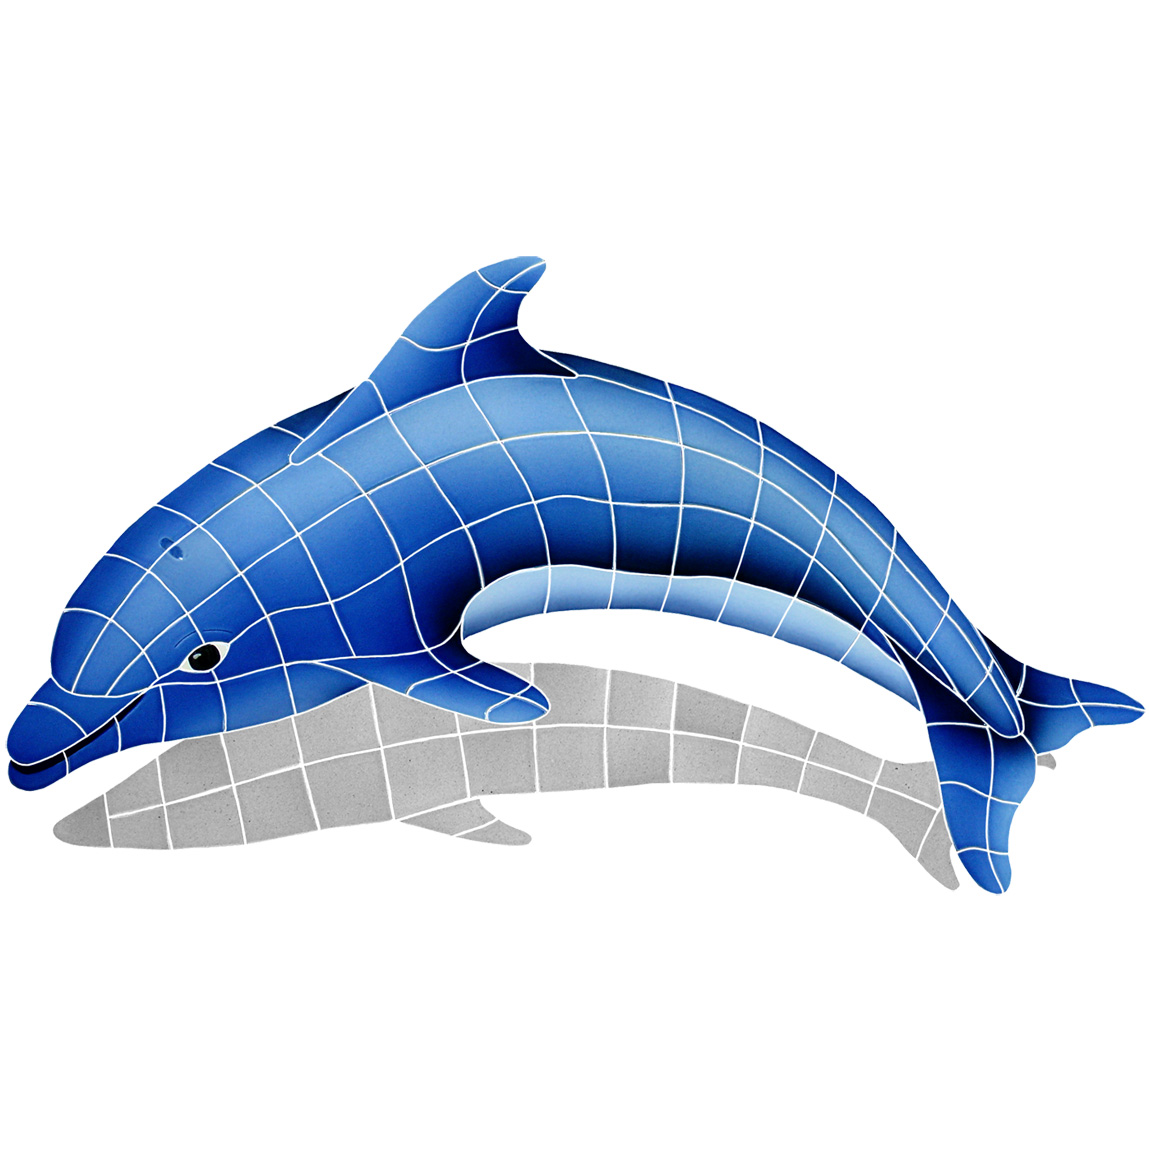 "Dolphin Left Large with Shadow Ceramic Mosaic Swimming Pool Mural 25"" x 40"", 1 piece"